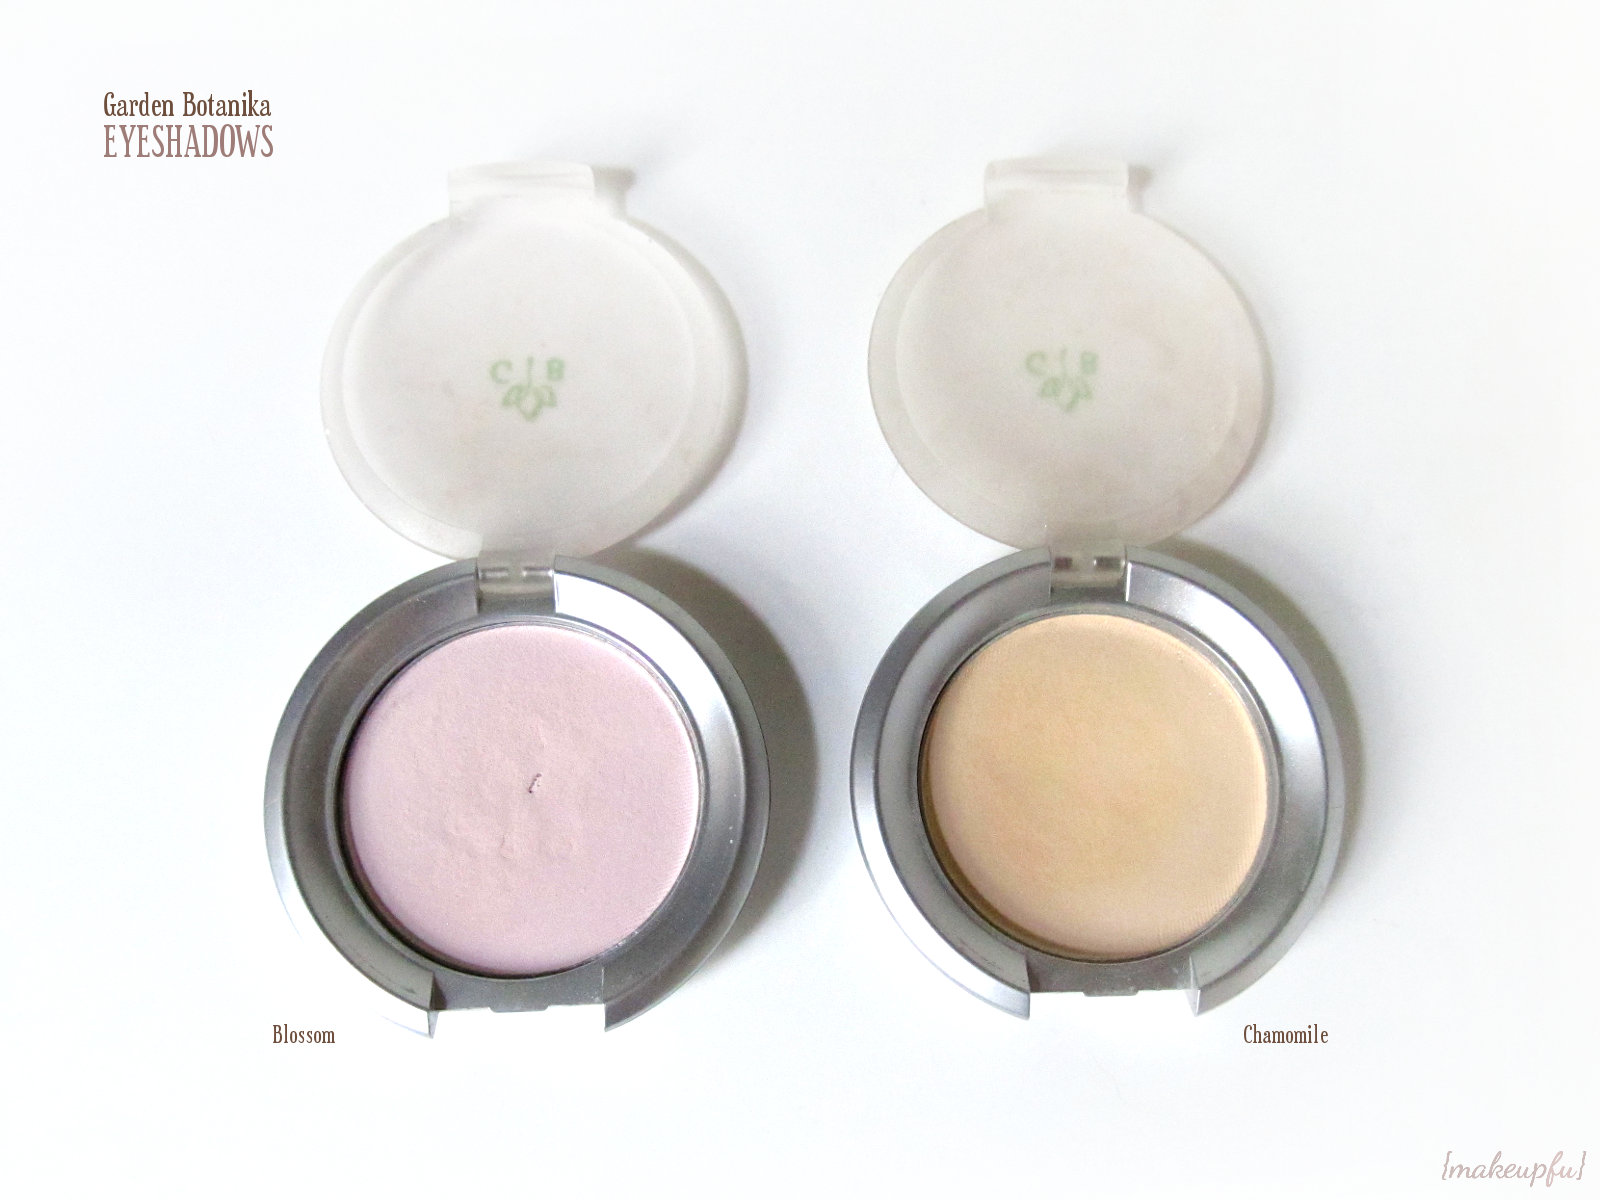 Throwback Thursday Garden Botanika Eyeshadow makeupfu